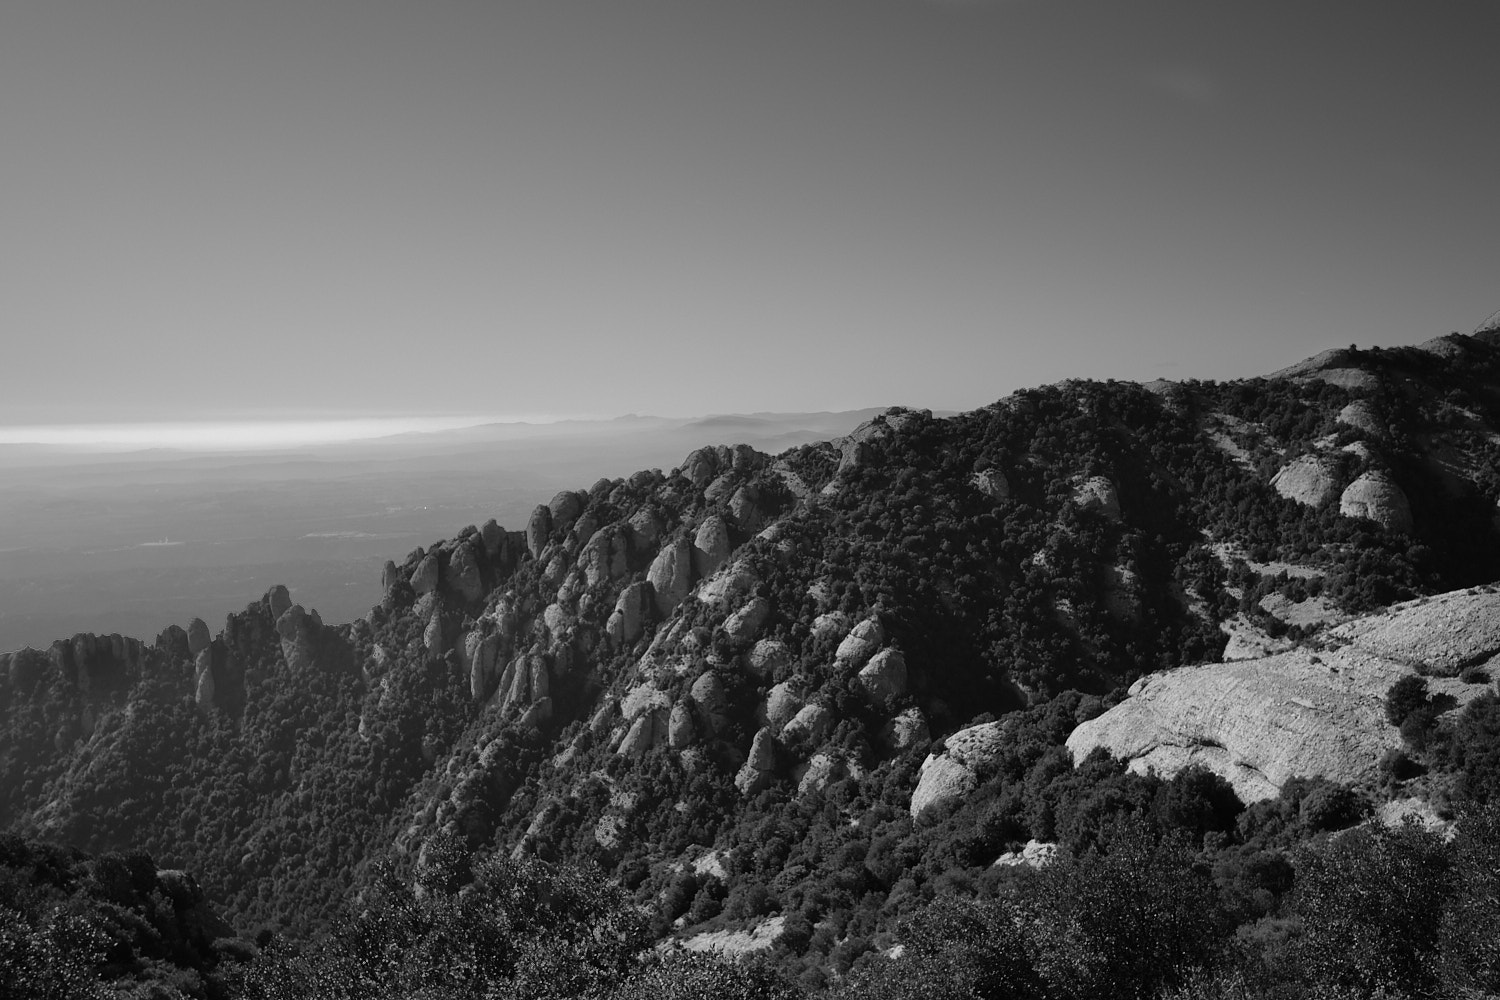 Barcelona, Montserrat, the south path to the upper chapel